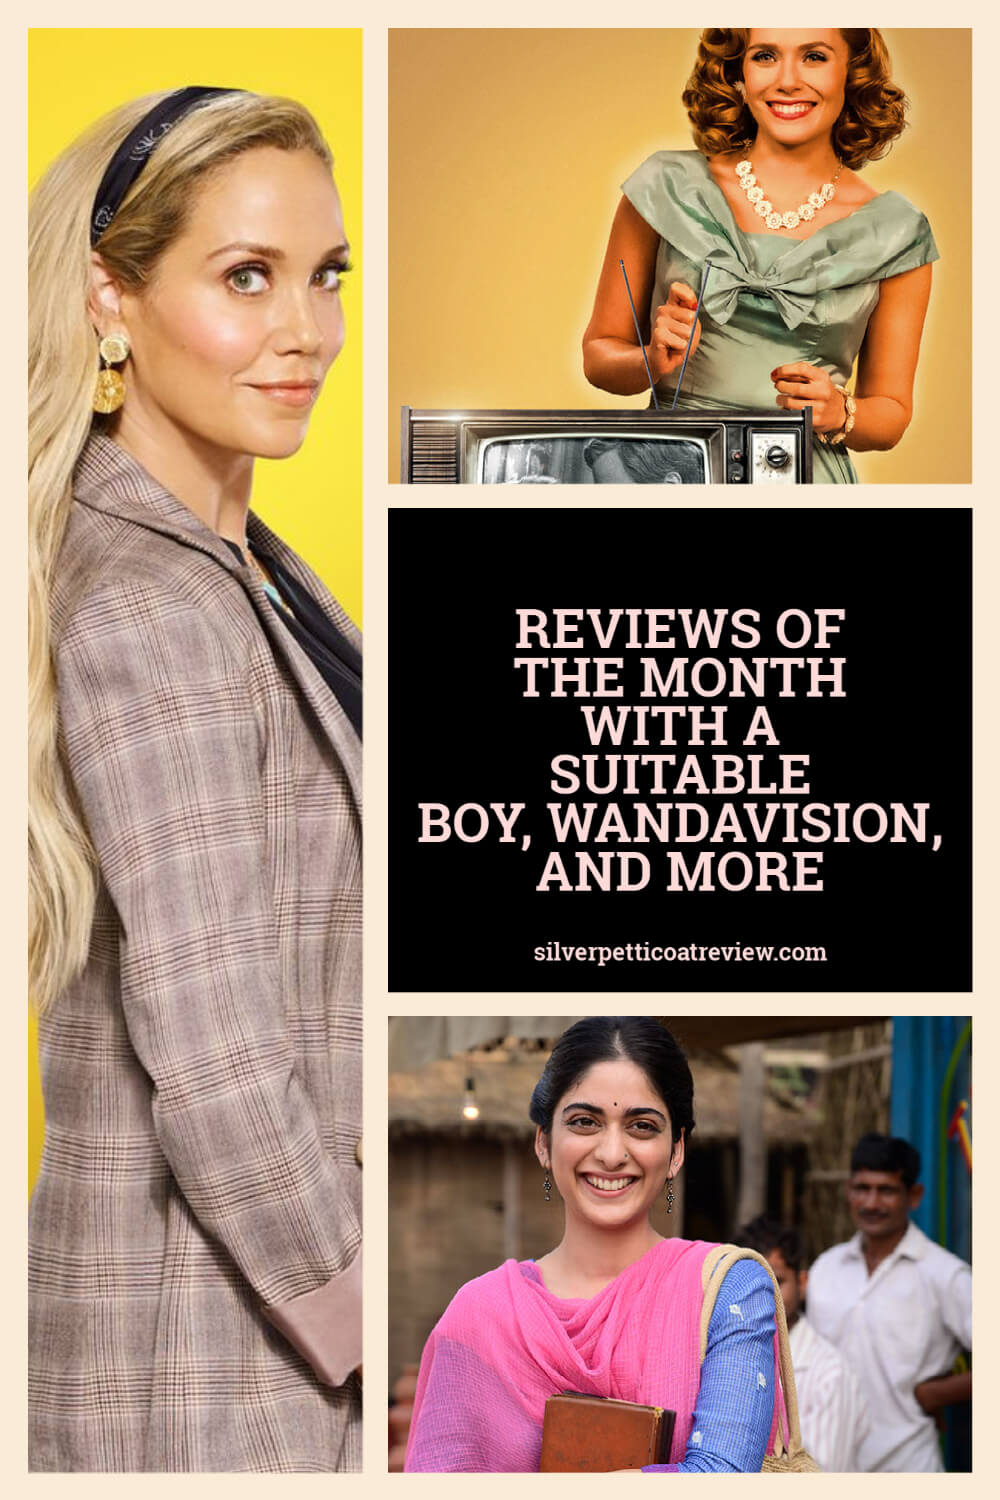 Reviews of the Month collage with WandaVision, A Suitable Boy, and Saved by the Bell 2020; pinterest image